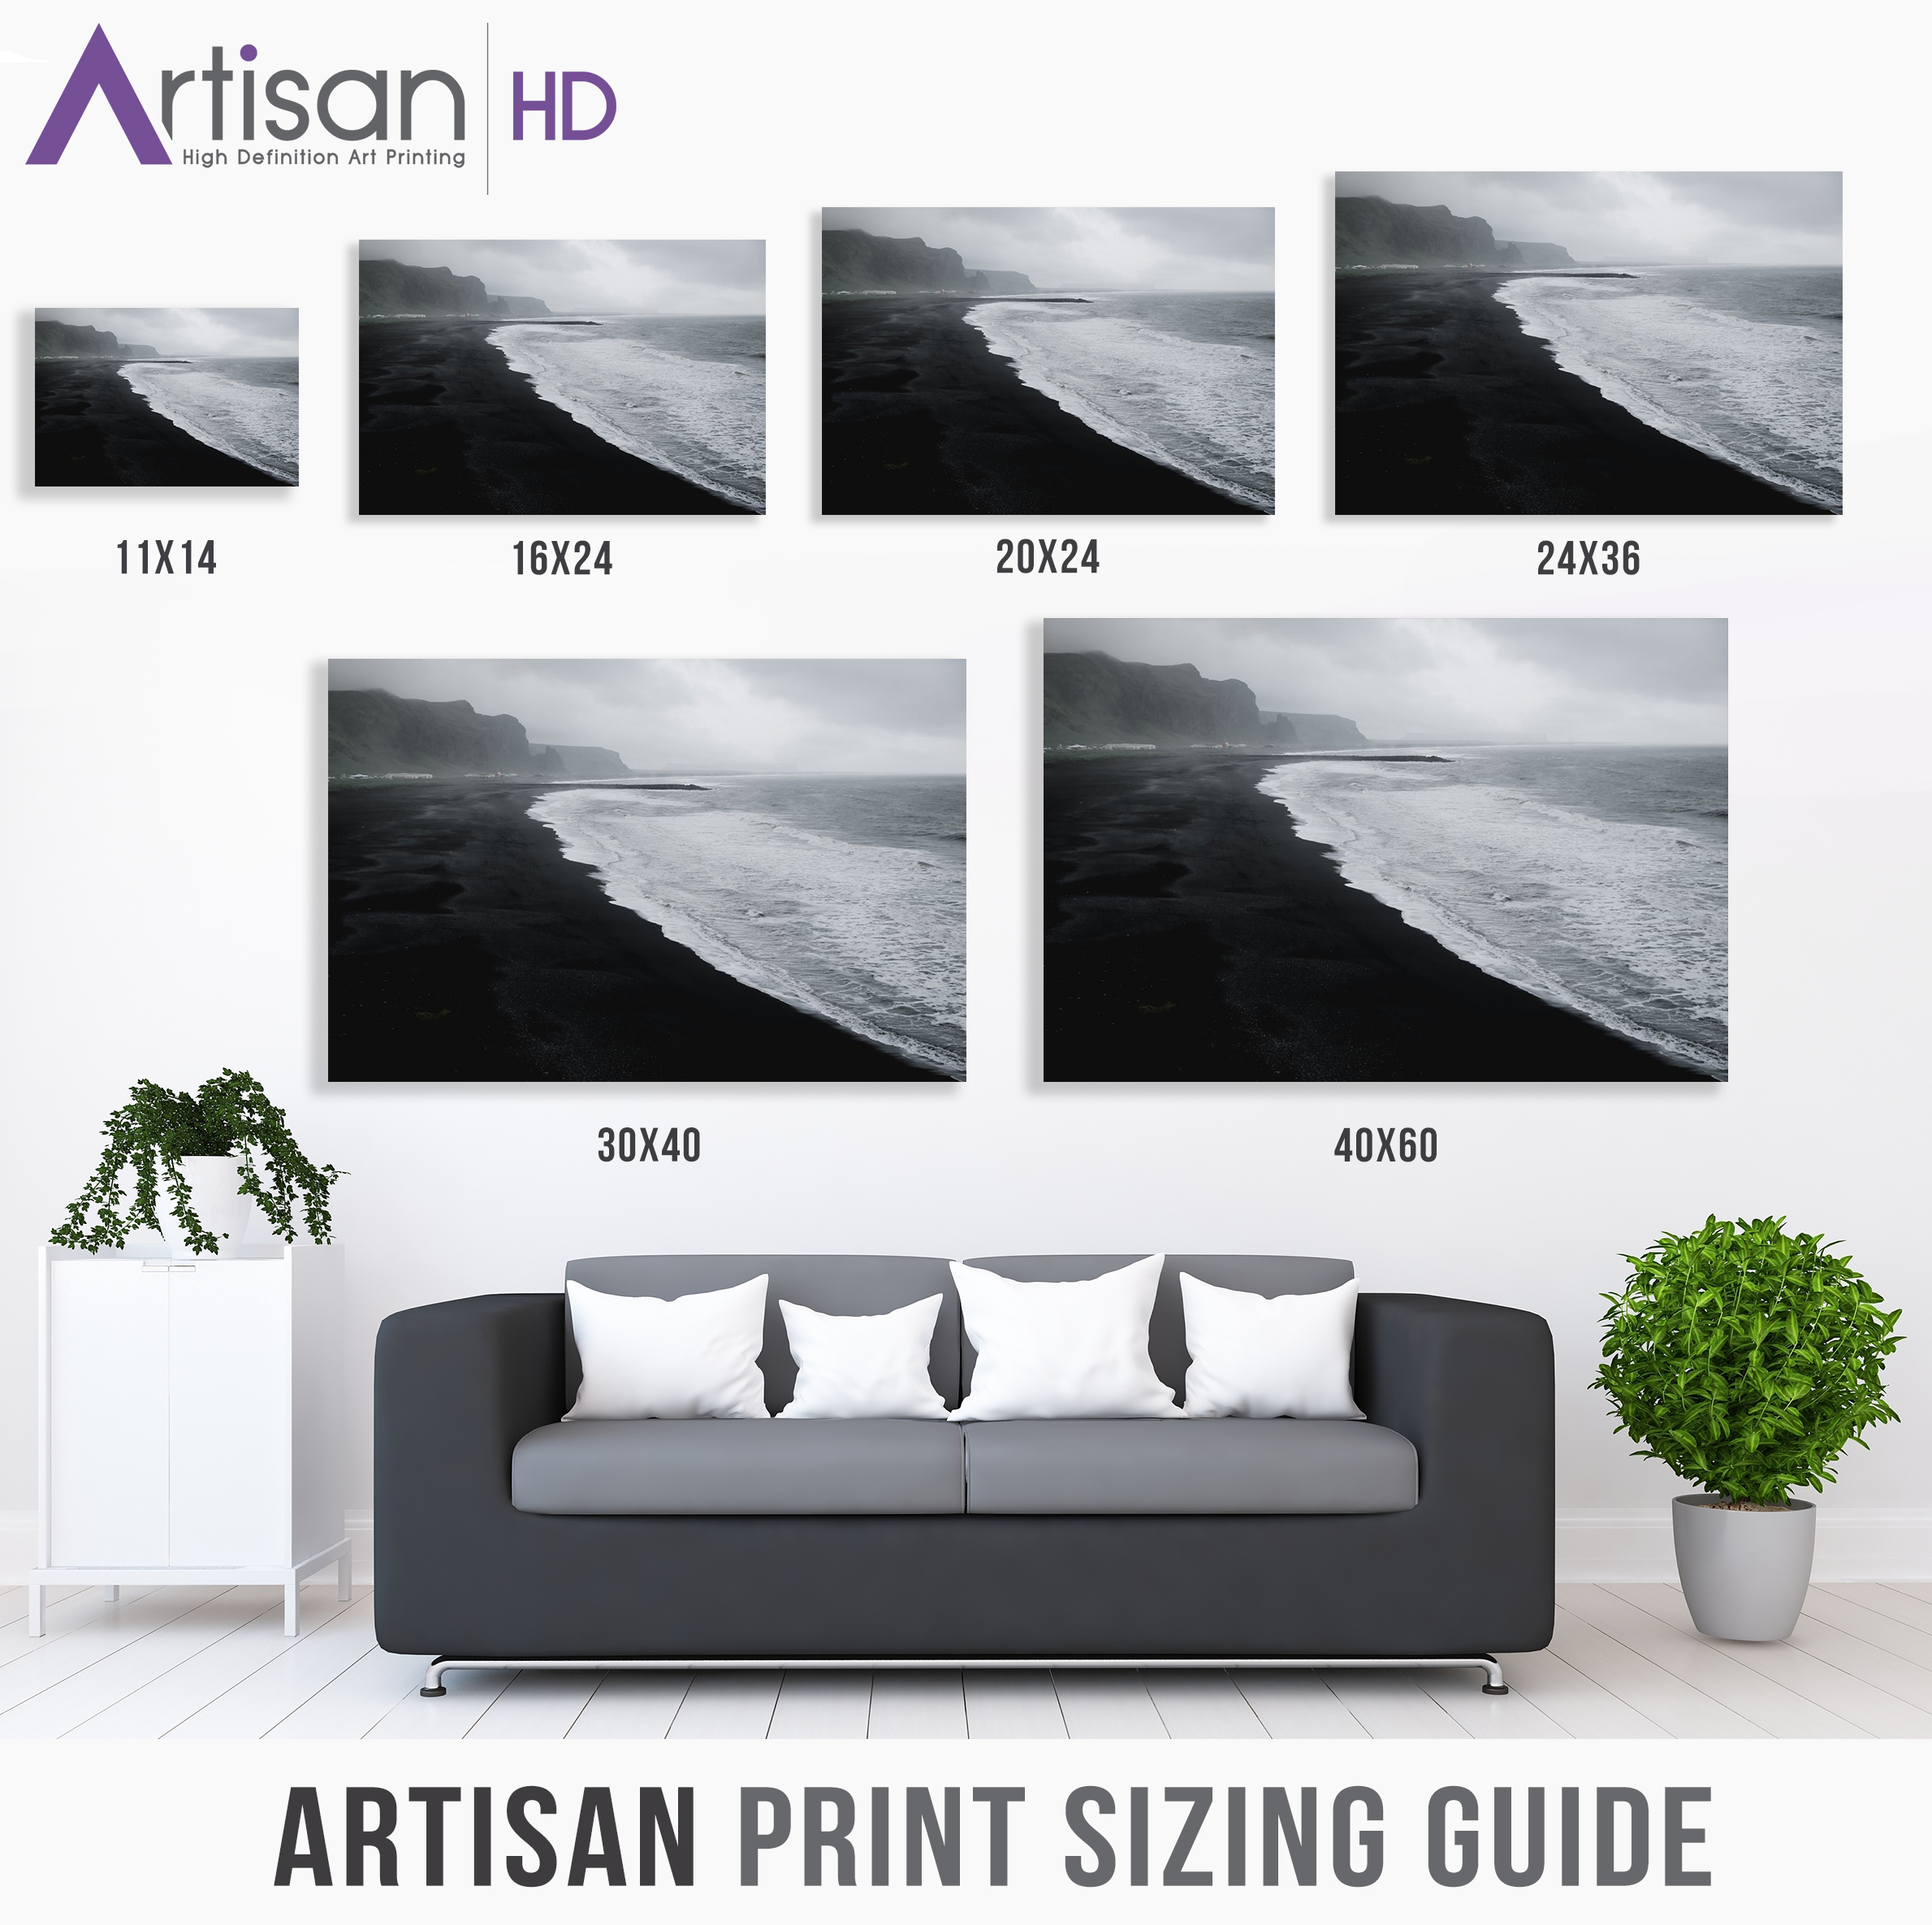 popular print sizes guide artisanhd